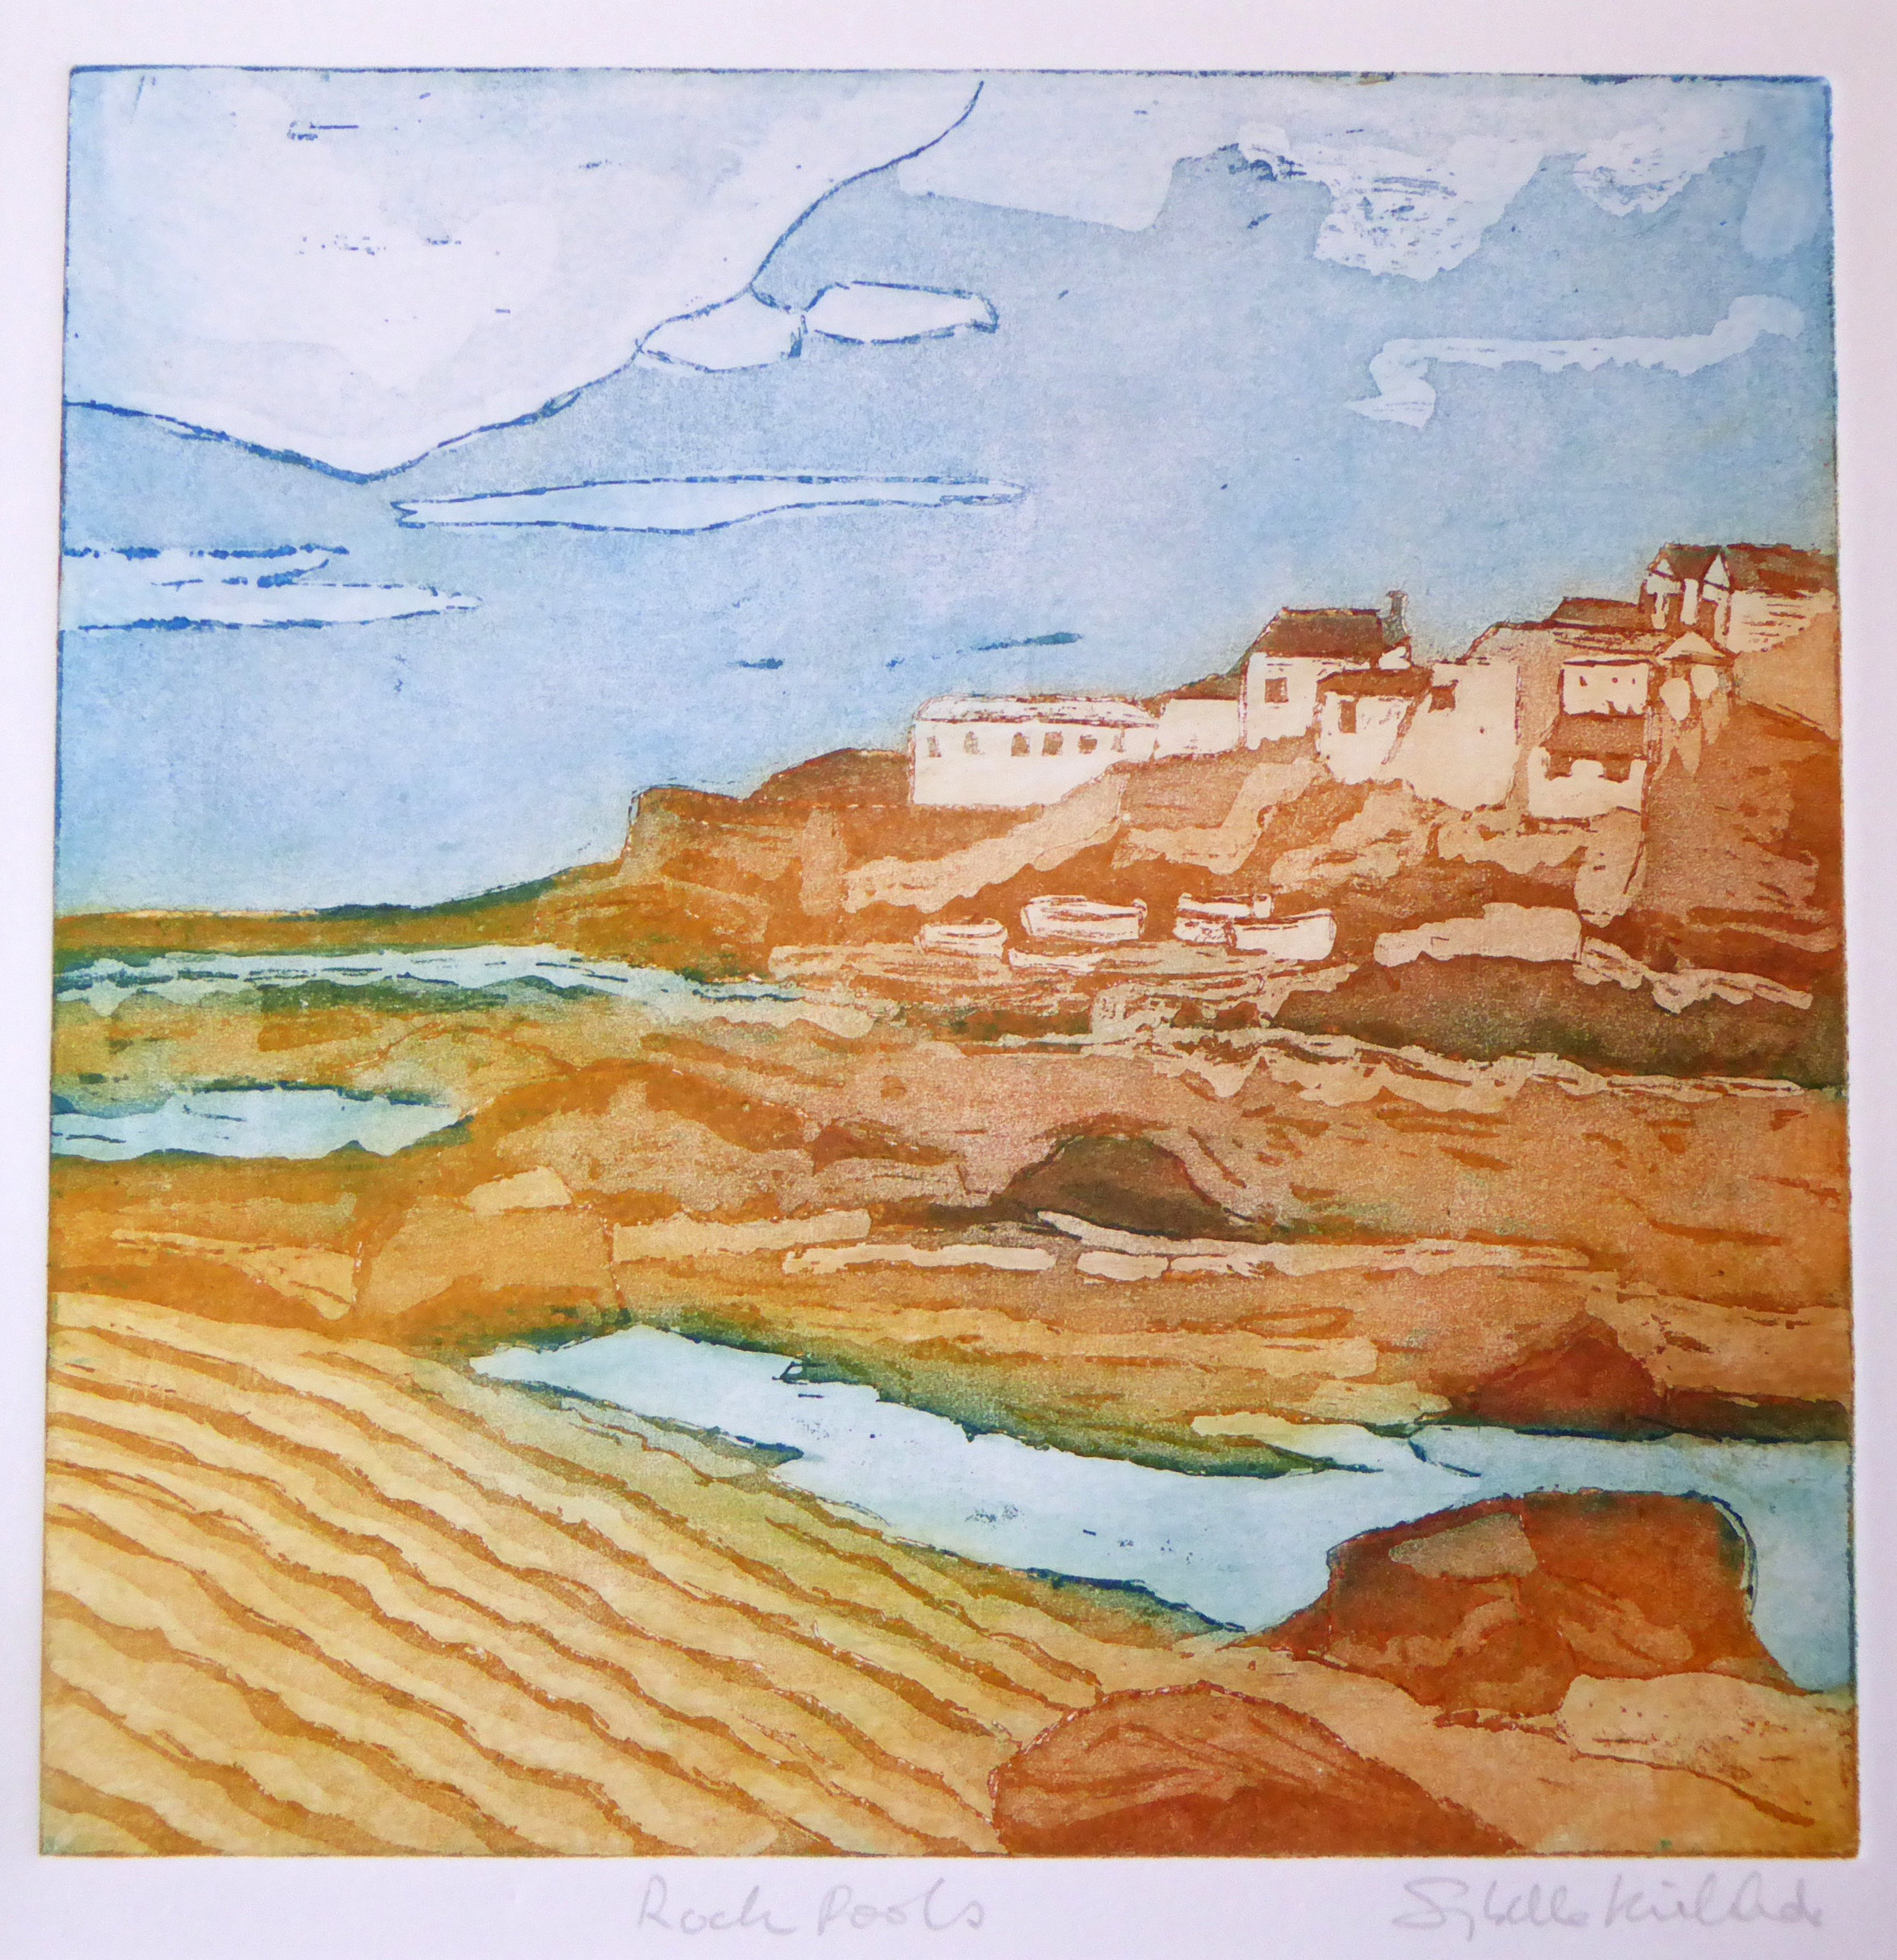 Coverack Rock Pools - 36 x 35cm (unframed)